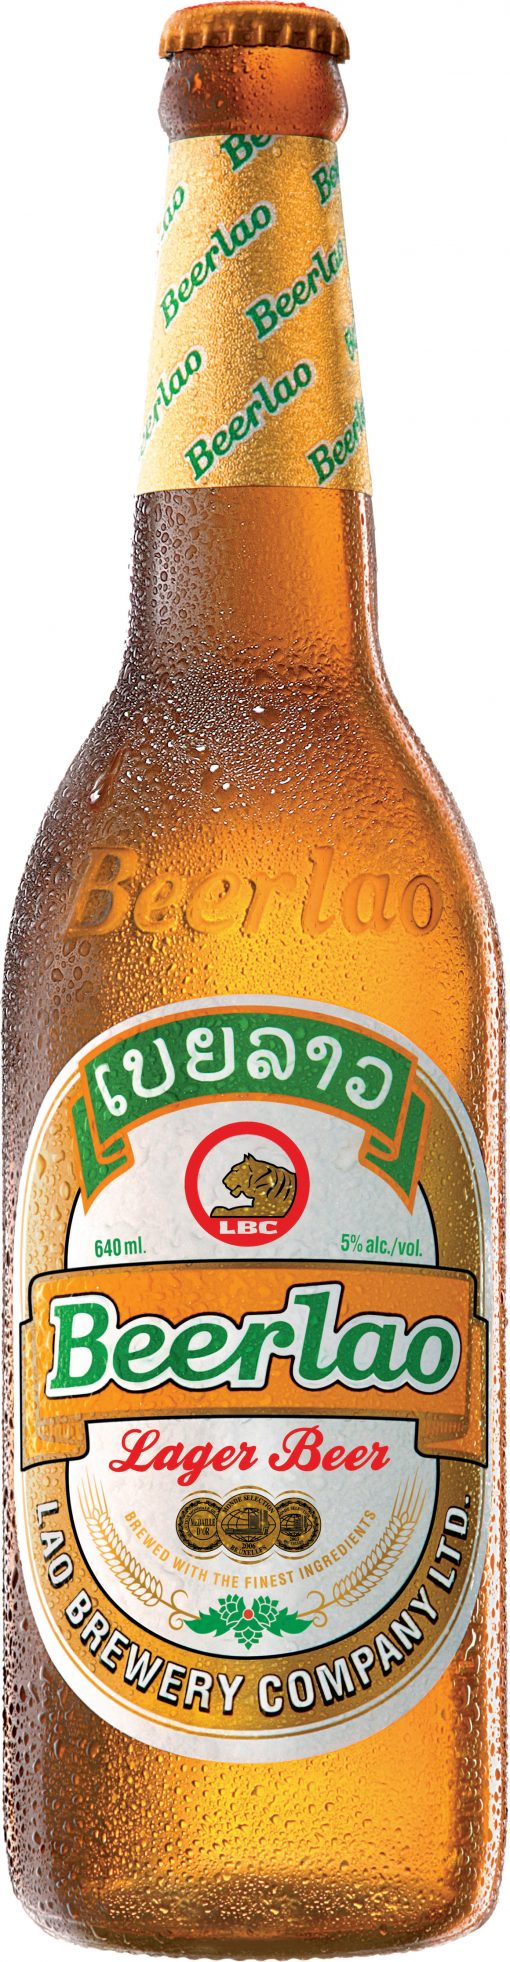 Beerlao 12x 640ml Bottles